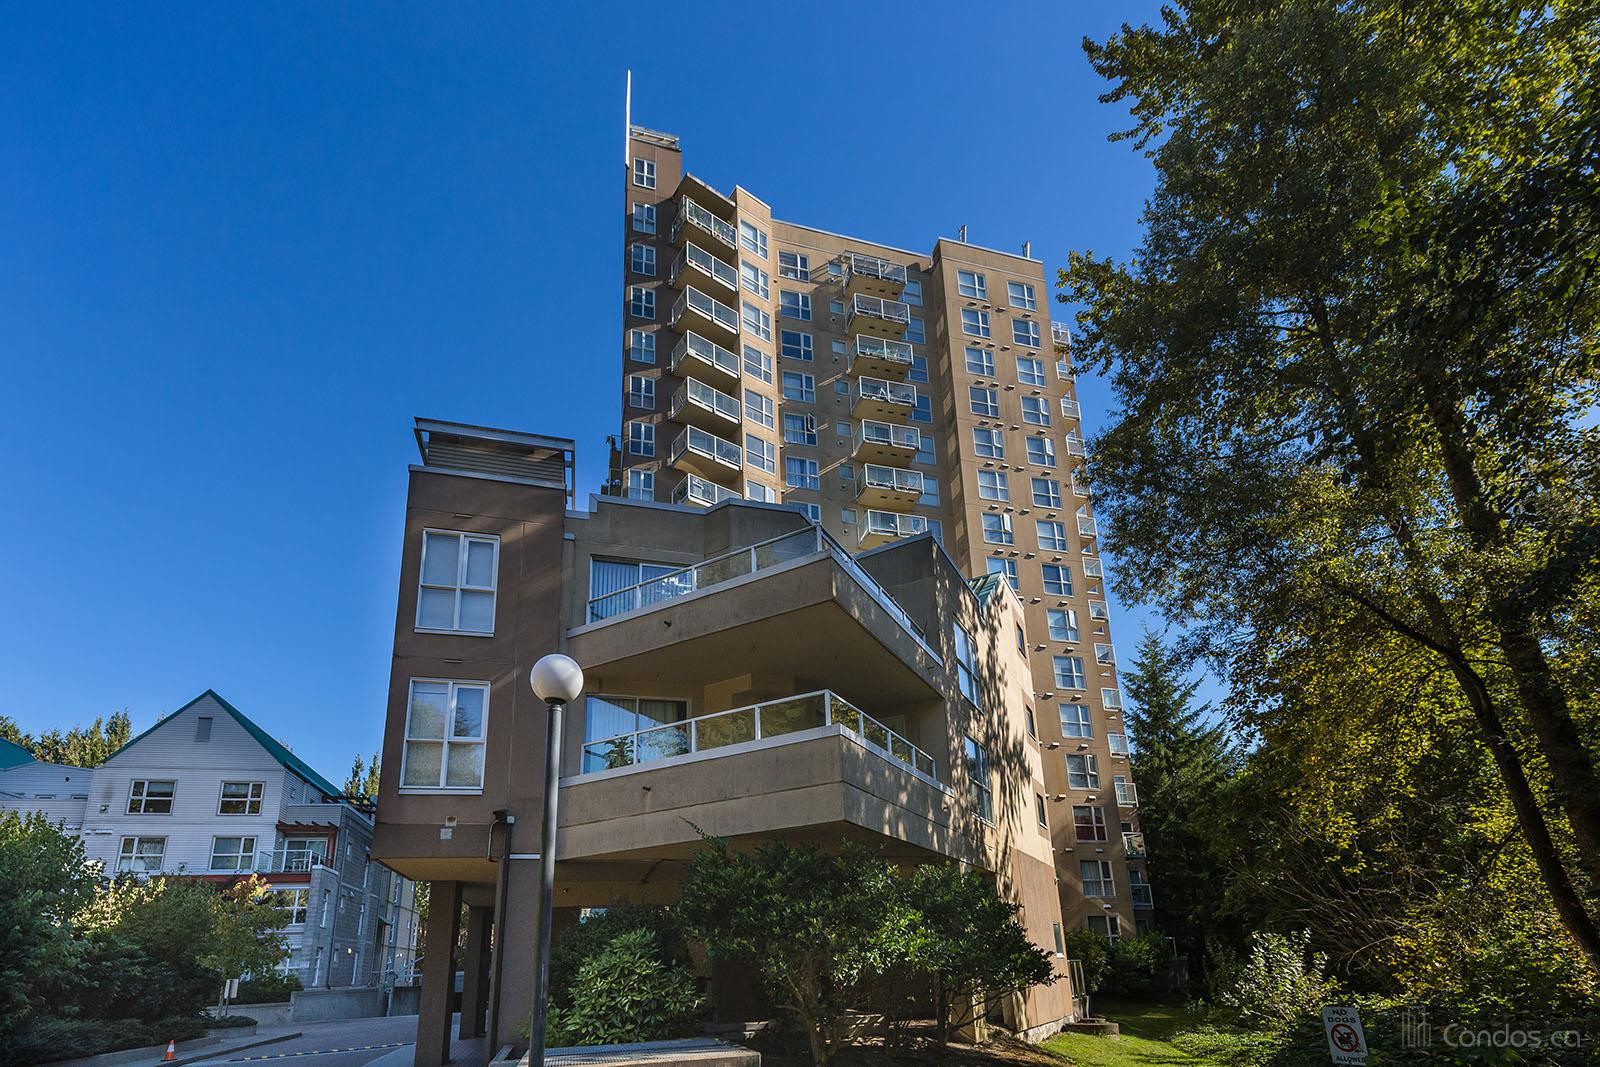 Balmoral Tower at 9830 Whalley Blvd, Surrey 0